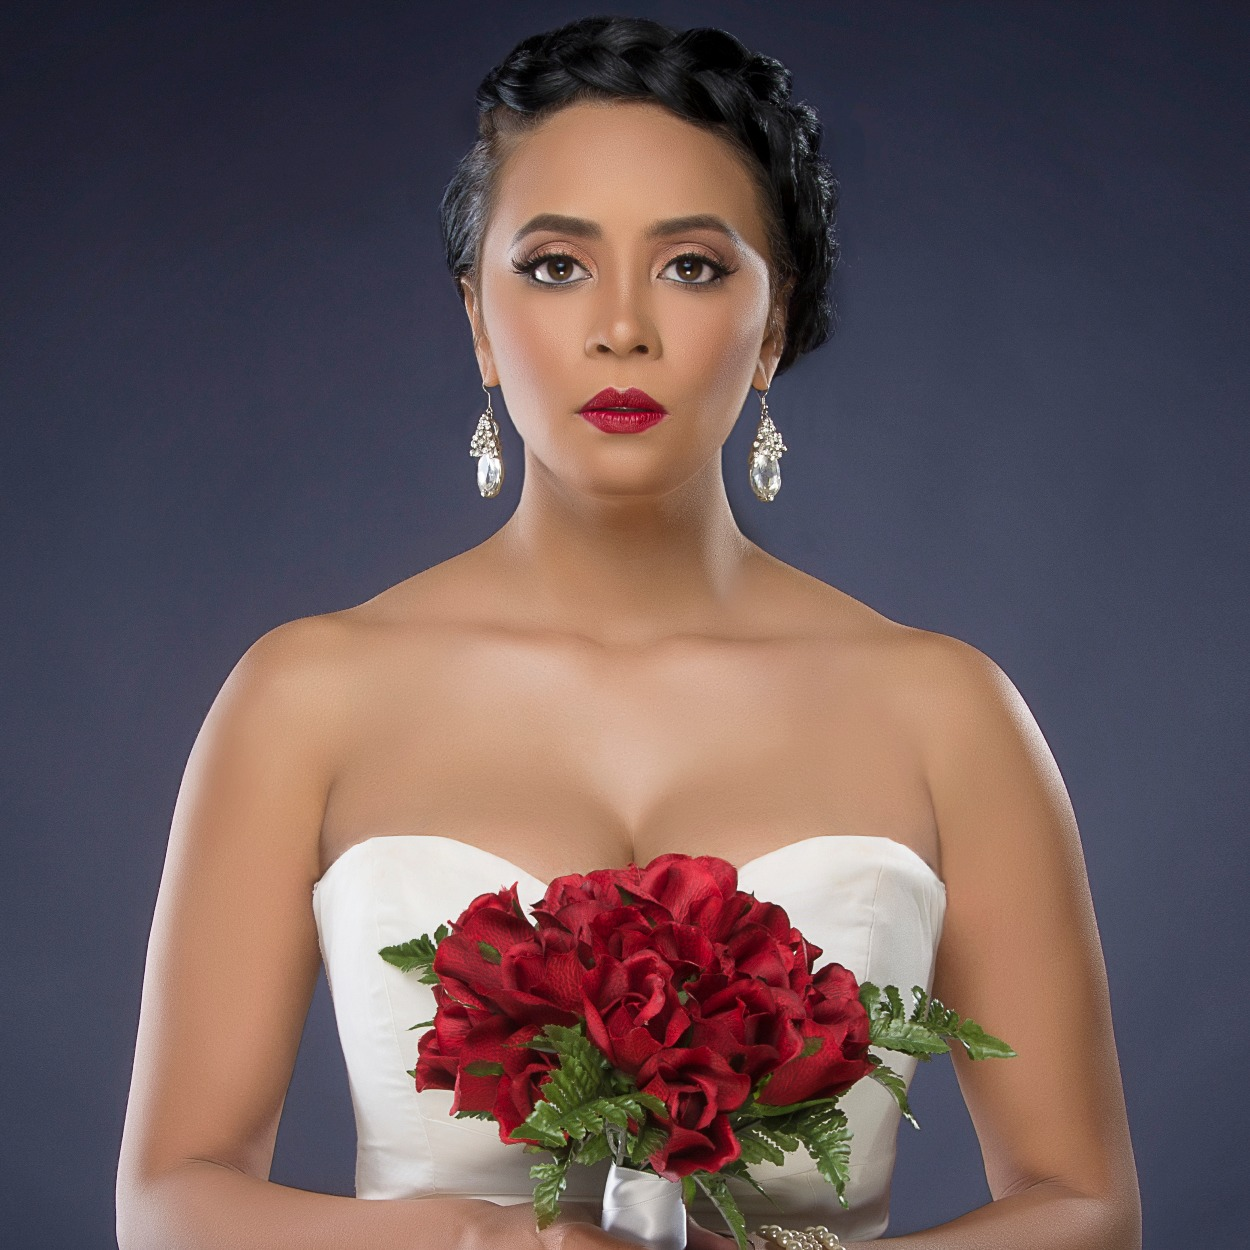 Bridal portrait makeup by Moni